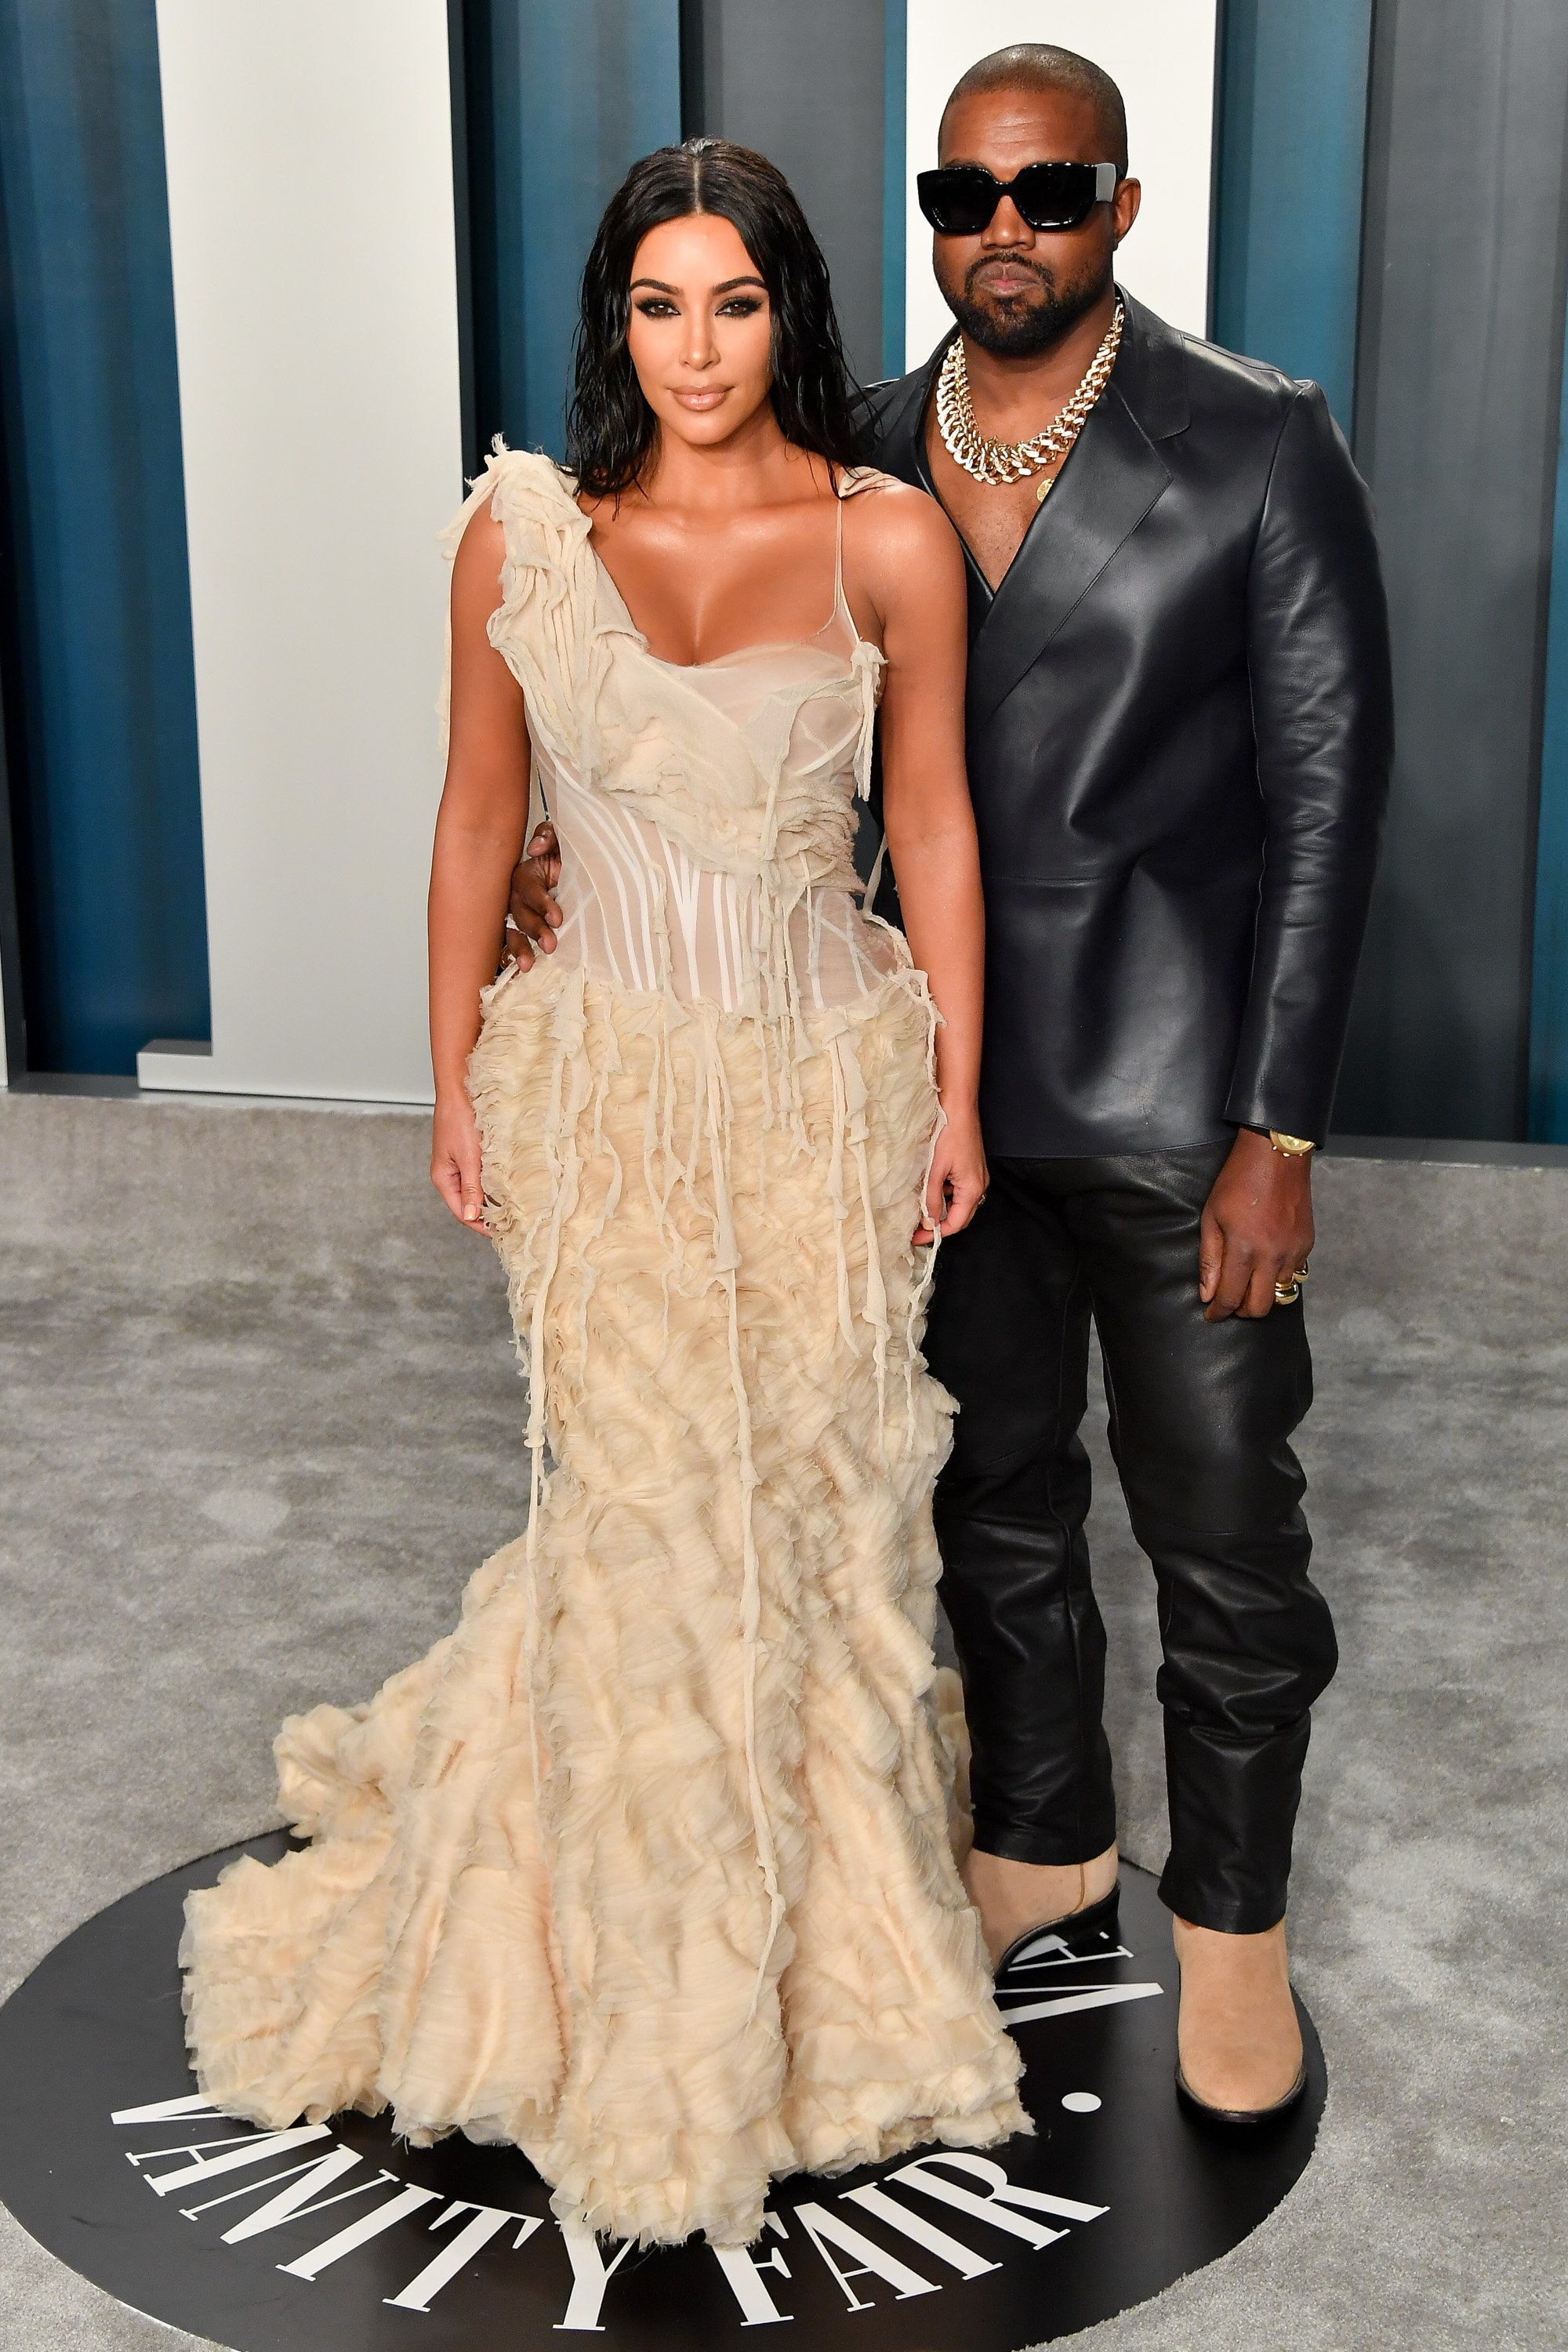 Kim Kardashian West and Kanye West arrive at the 2020 Vanity Fair Oscar Party on February 09, 2020, in Beverly Hills, California.   Source: Getty Images.